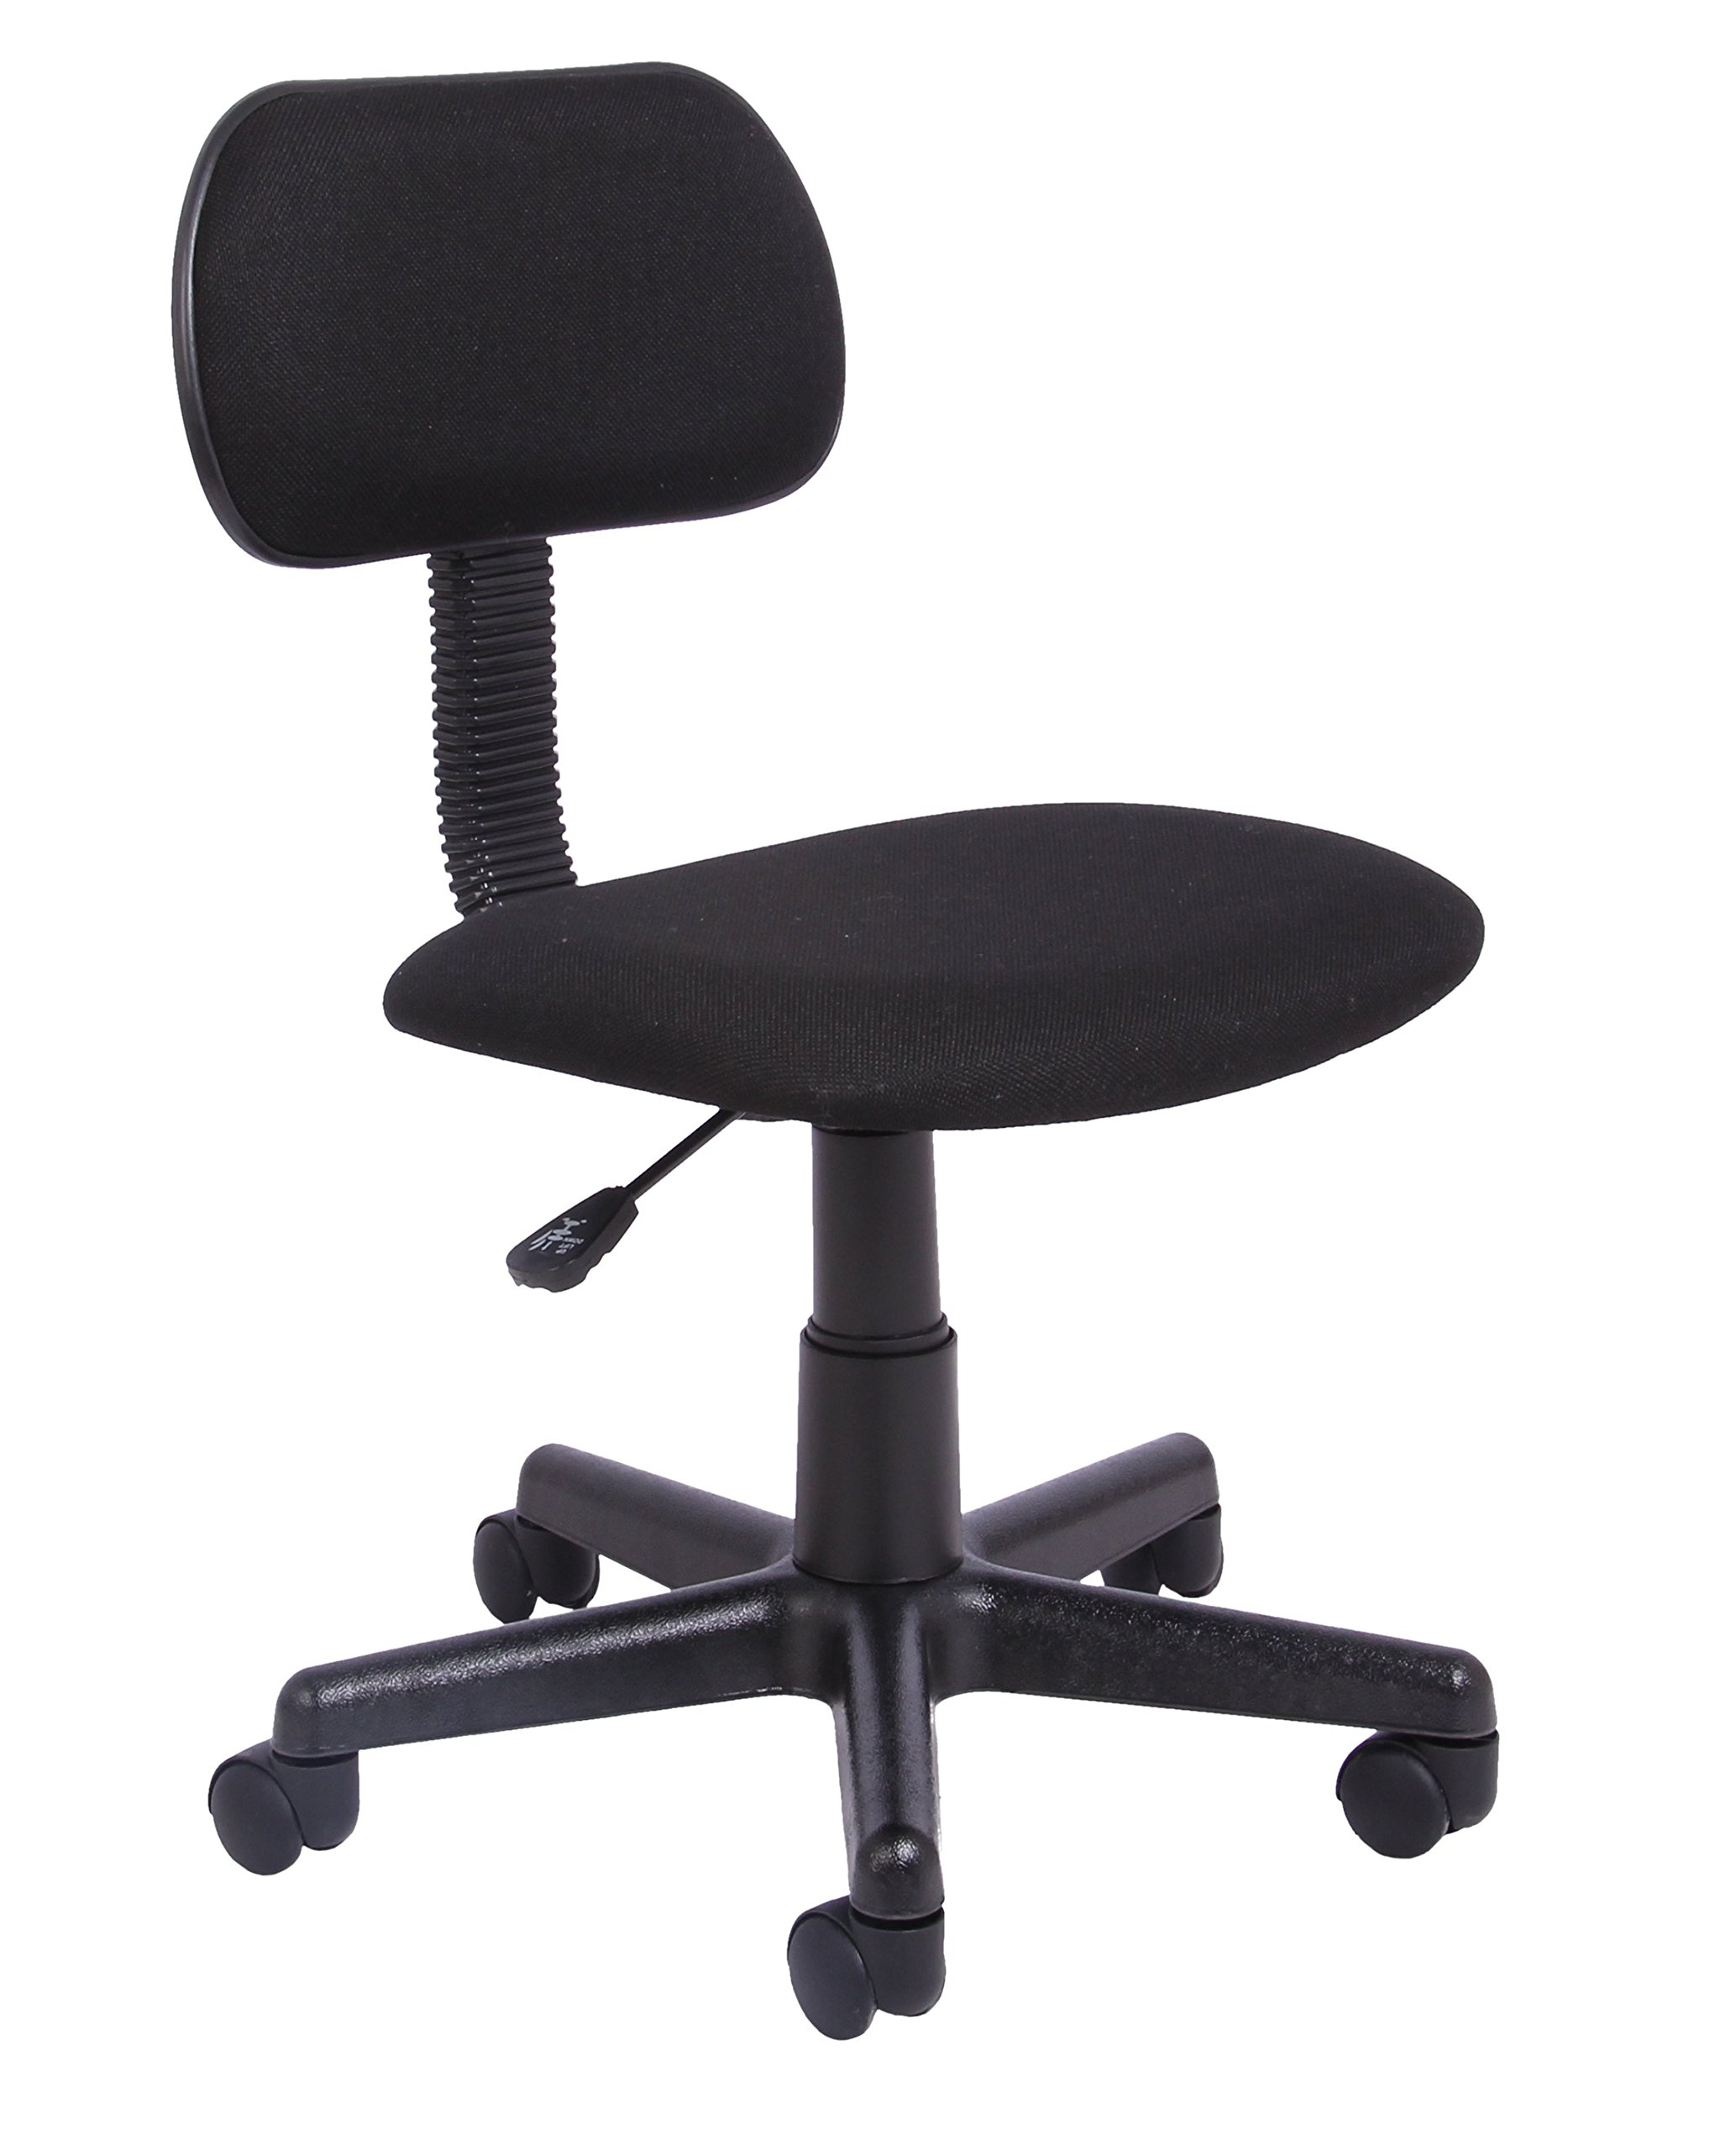 Office Essentials Office Chair For Home Buy Online In Slovenia At Desertcart